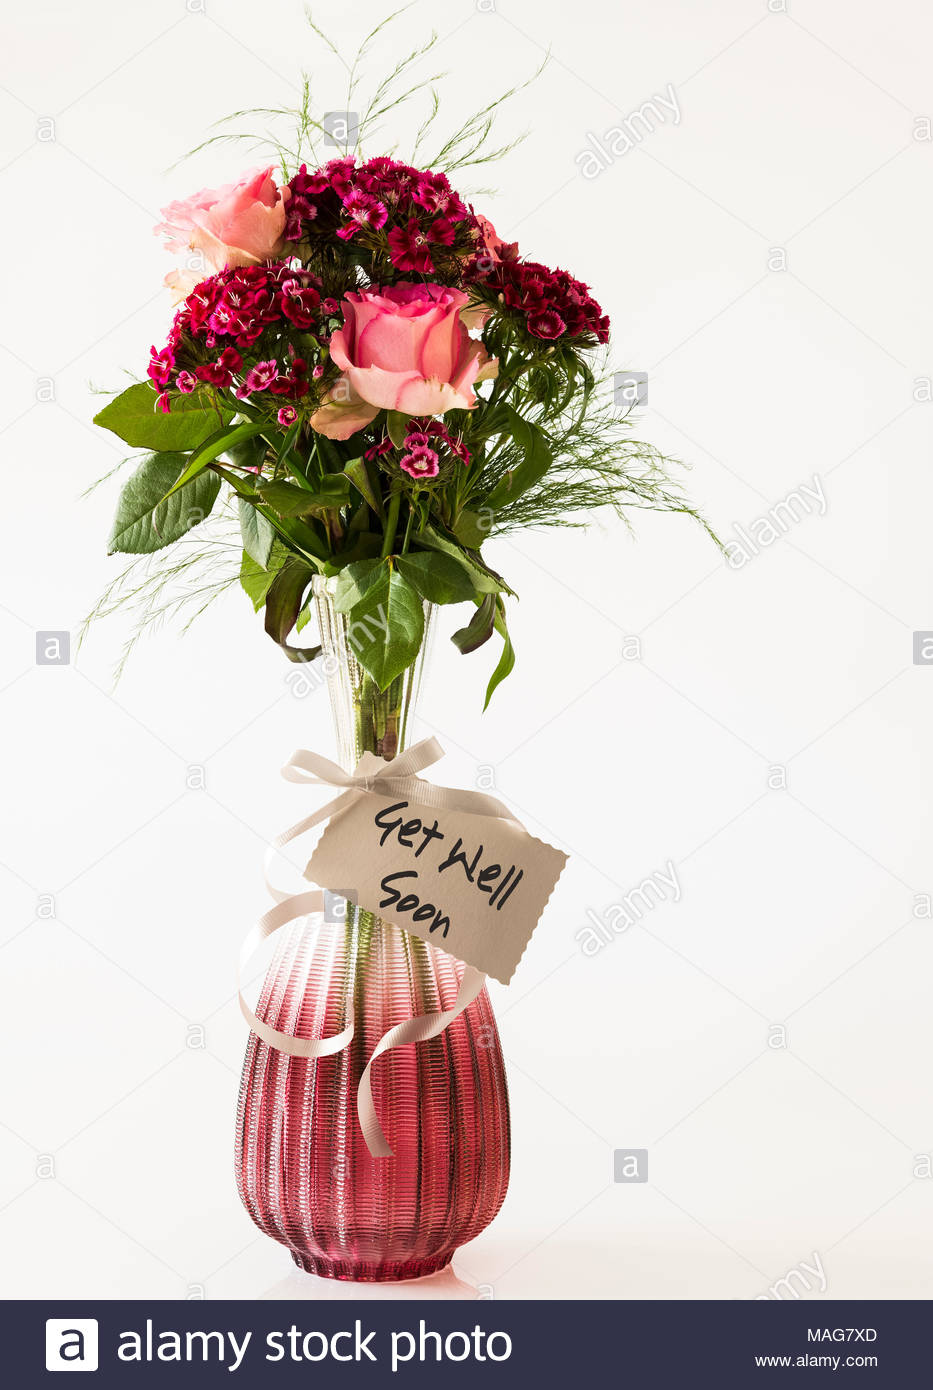 Get Well Soon Card Flowers High Resolution Stock Photography And Images Alamy